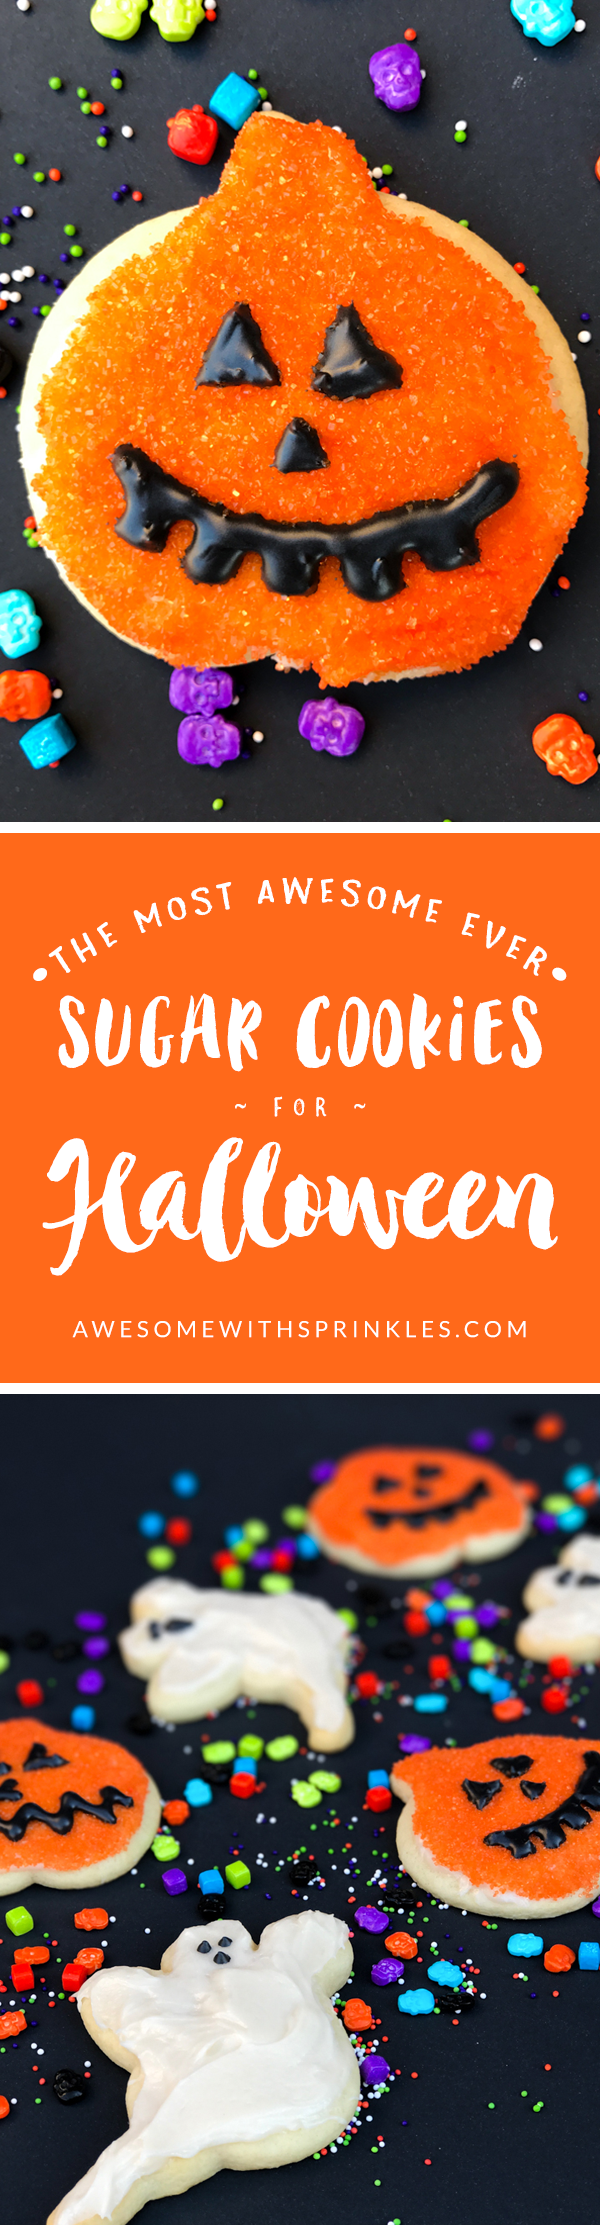 The Most Awesome Ever Sugar Cookies for Halloween | Awesome with Sprinkles